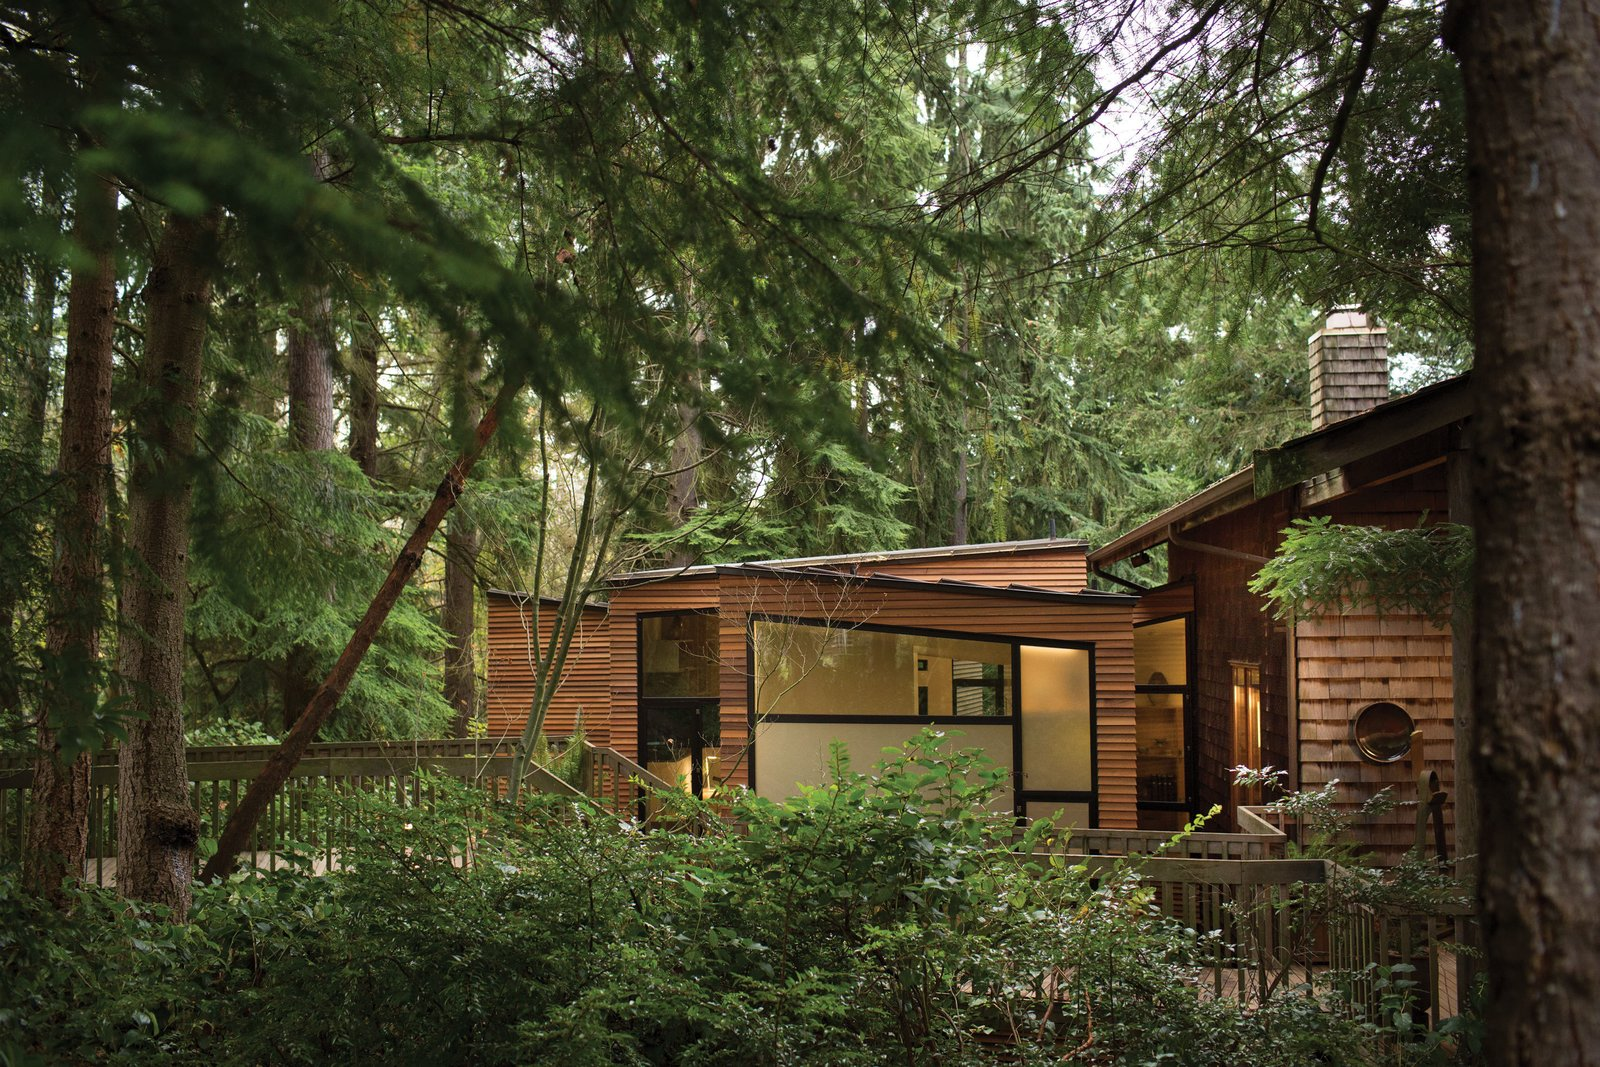 Tacoma, Washington–based architect Ko Wibowo of Architecture for Everyone will discuss his Stevens Addition, which he designed for Ken Stevens, an active, vibrant man who'd been diagnosed with Alzheimer's. Wibowo's clean-lined project is featured in the July/August 2014 issue.   Photo by Coral Von Zumwalt.  Photo 1 of 9 in Designing a Home to Accommodate Alzheimer's